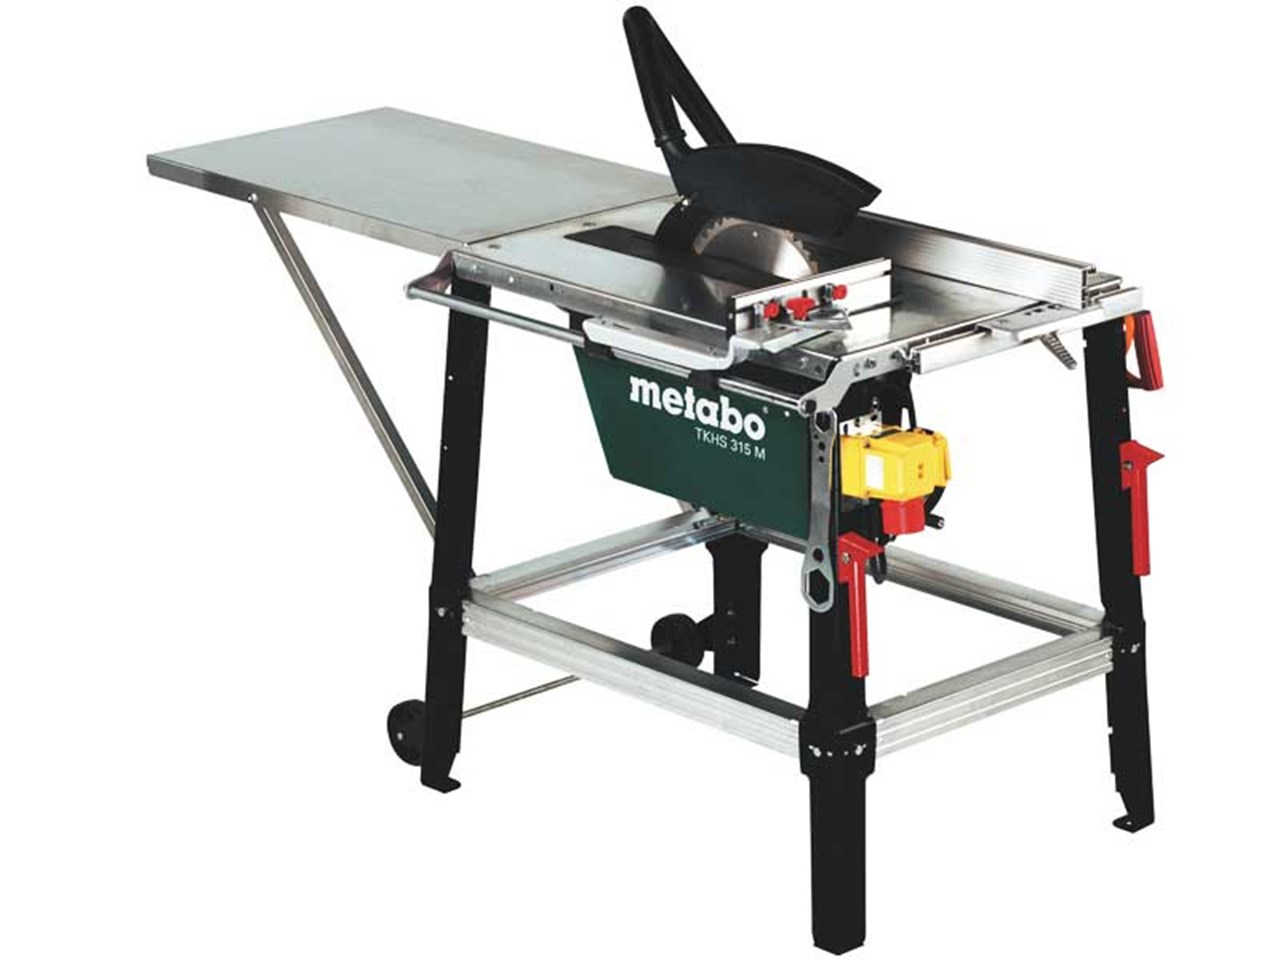 metabo tkhs315m 110v 110v 2500w site table saw with 24t